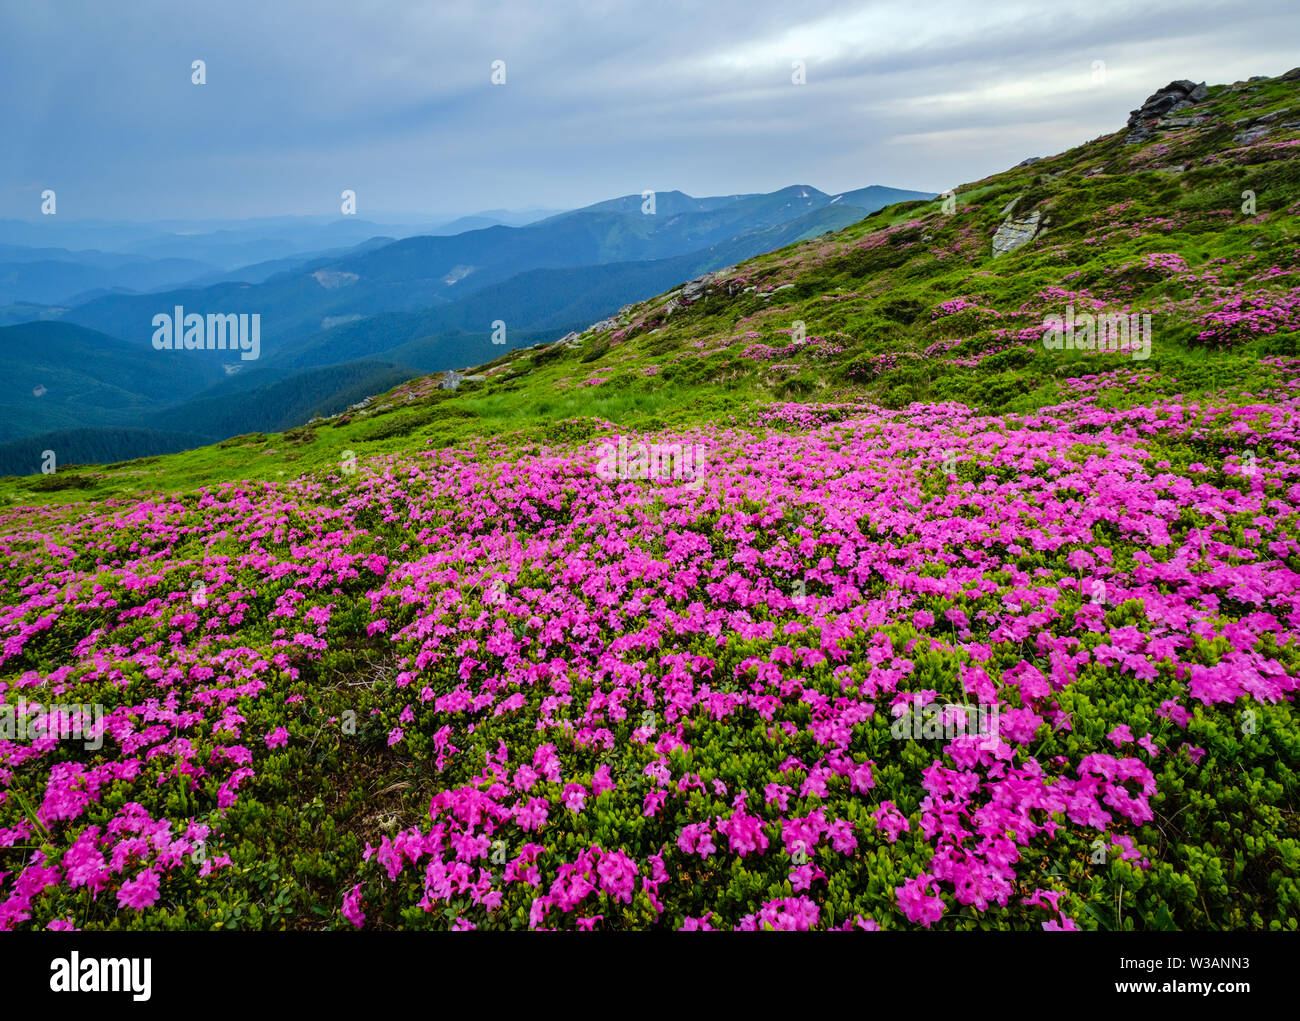 Pink rose rhododendron flowers (in front) on summer mountain ridge, Carpathian, Chornohora, Ukraine. - Stock Image